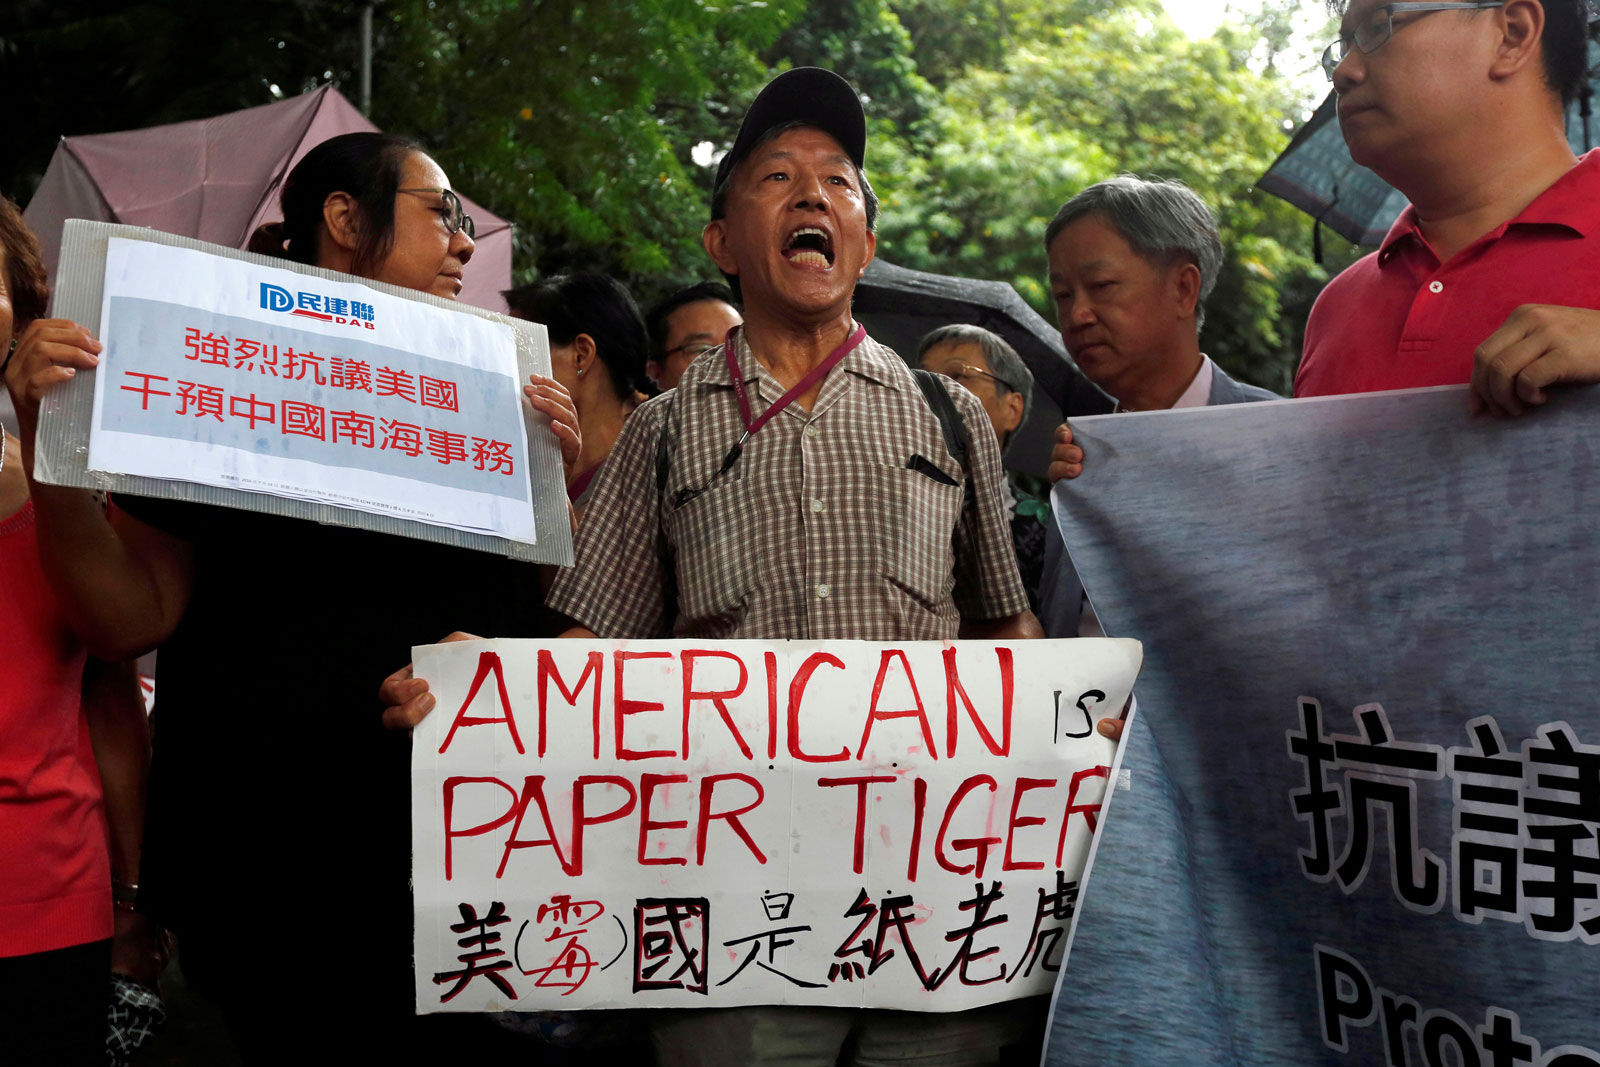 A protester chants slogans against the United States supporting an international court ruling that denied China's claims to the South China Sea, outside US Consulate in Hong Kong, China, July 14, 2016